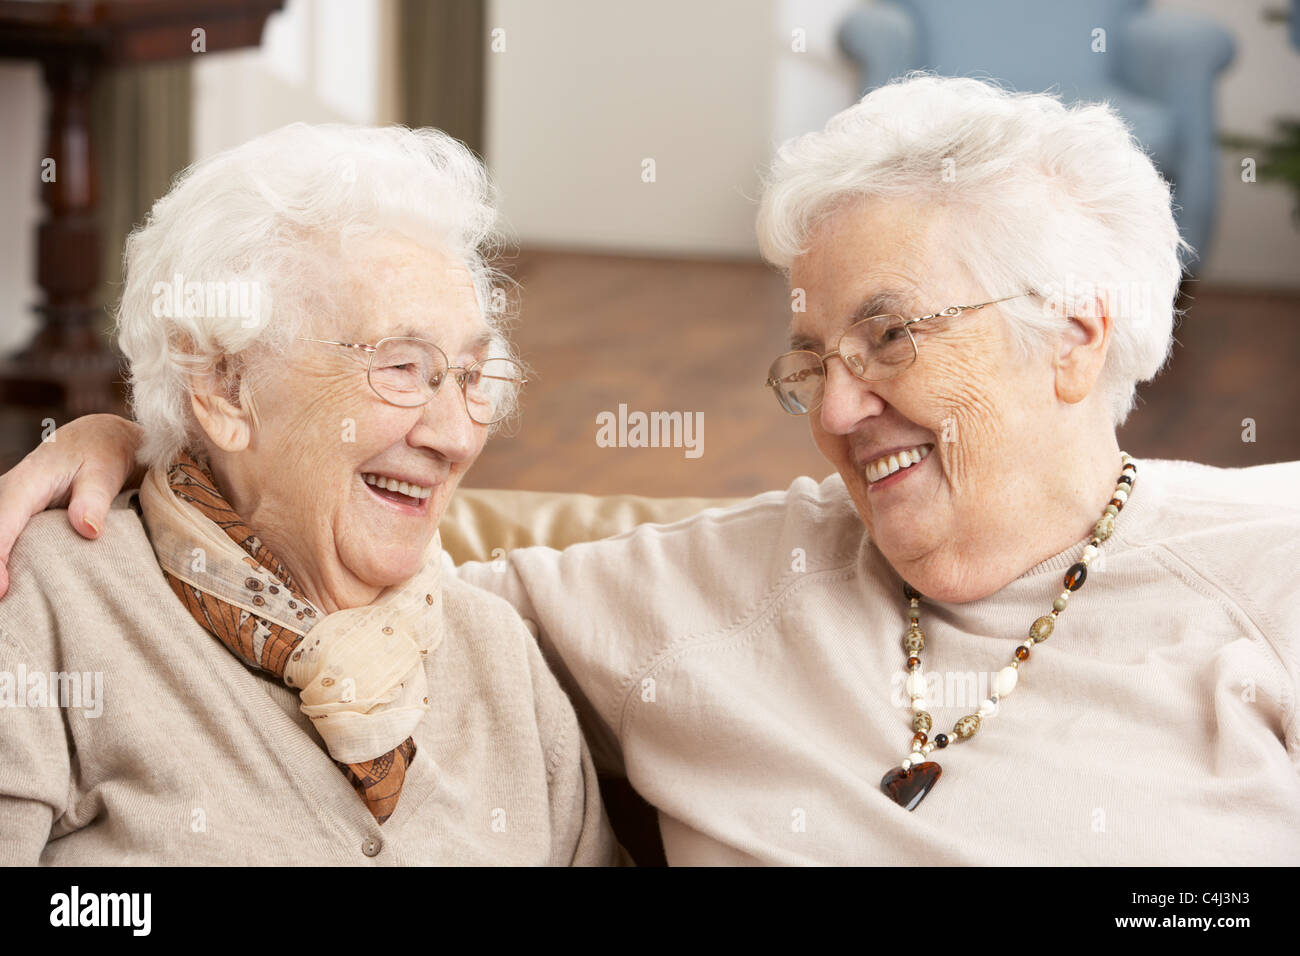 Two Senior Women Friends At Day Care Centre - Stock Image